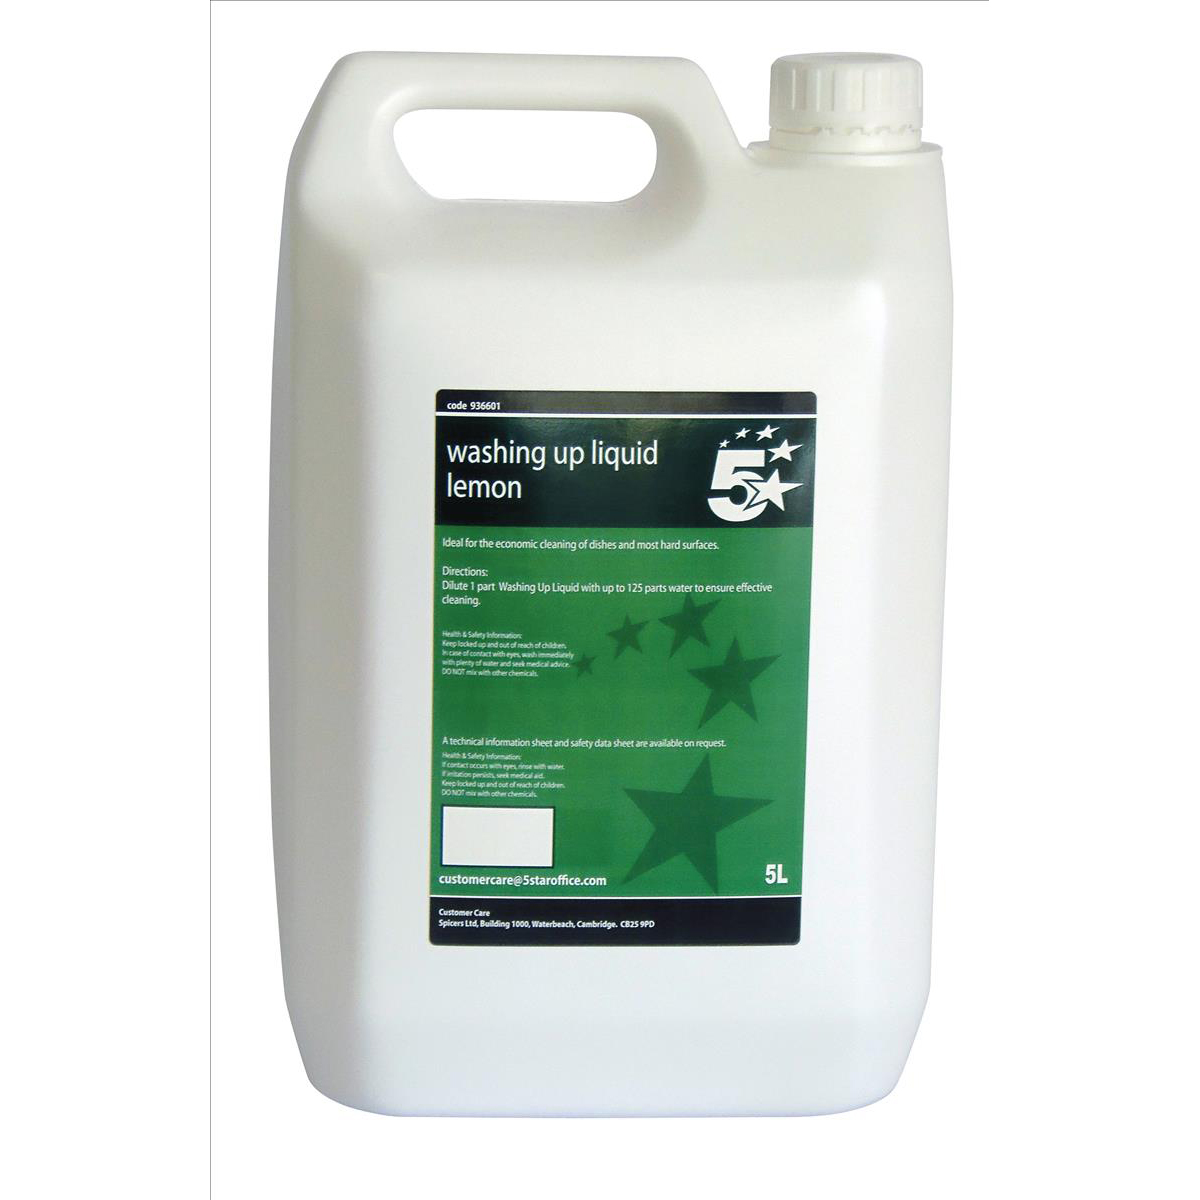 Dishwashing 5 Star Facilities Washing-up Liquid Lemon 5 Litres